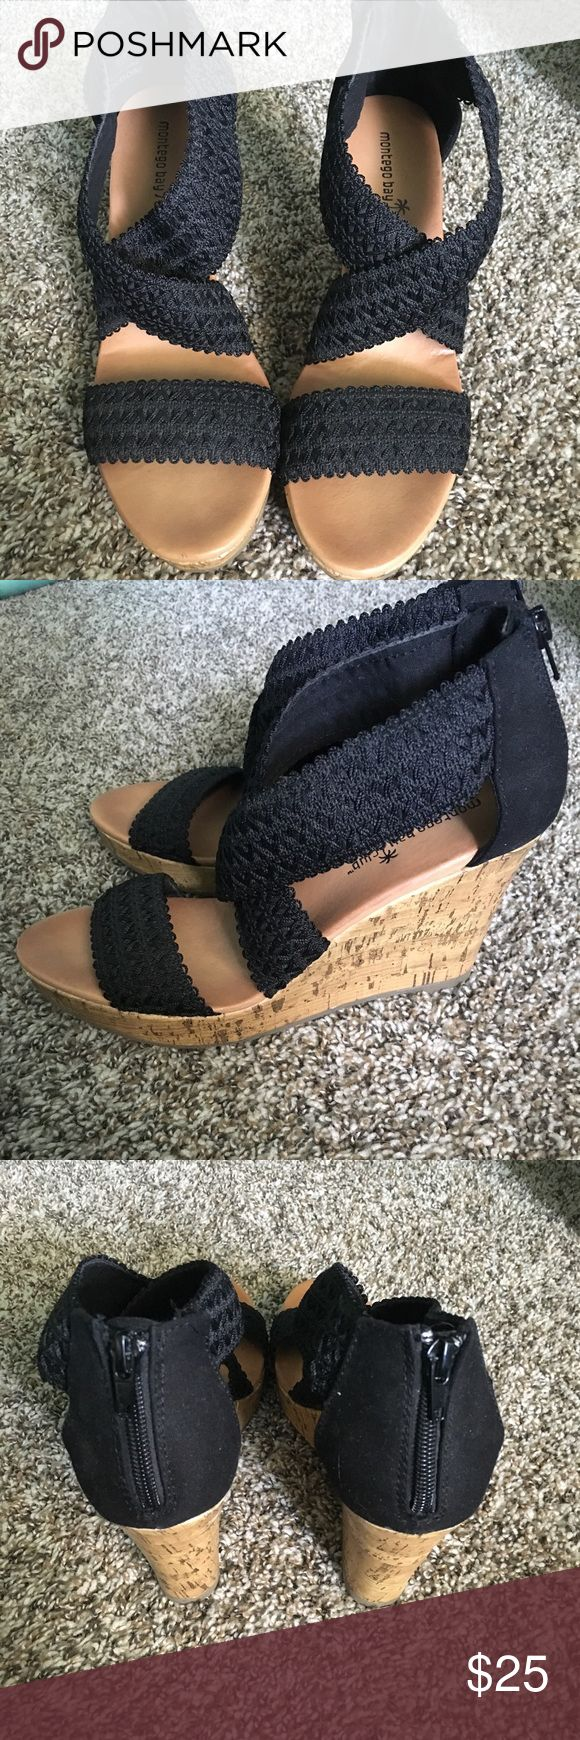 Black strappy wedges Black strappy wedge heels size 8. Worn once. NO TRADES Shoes Wedges